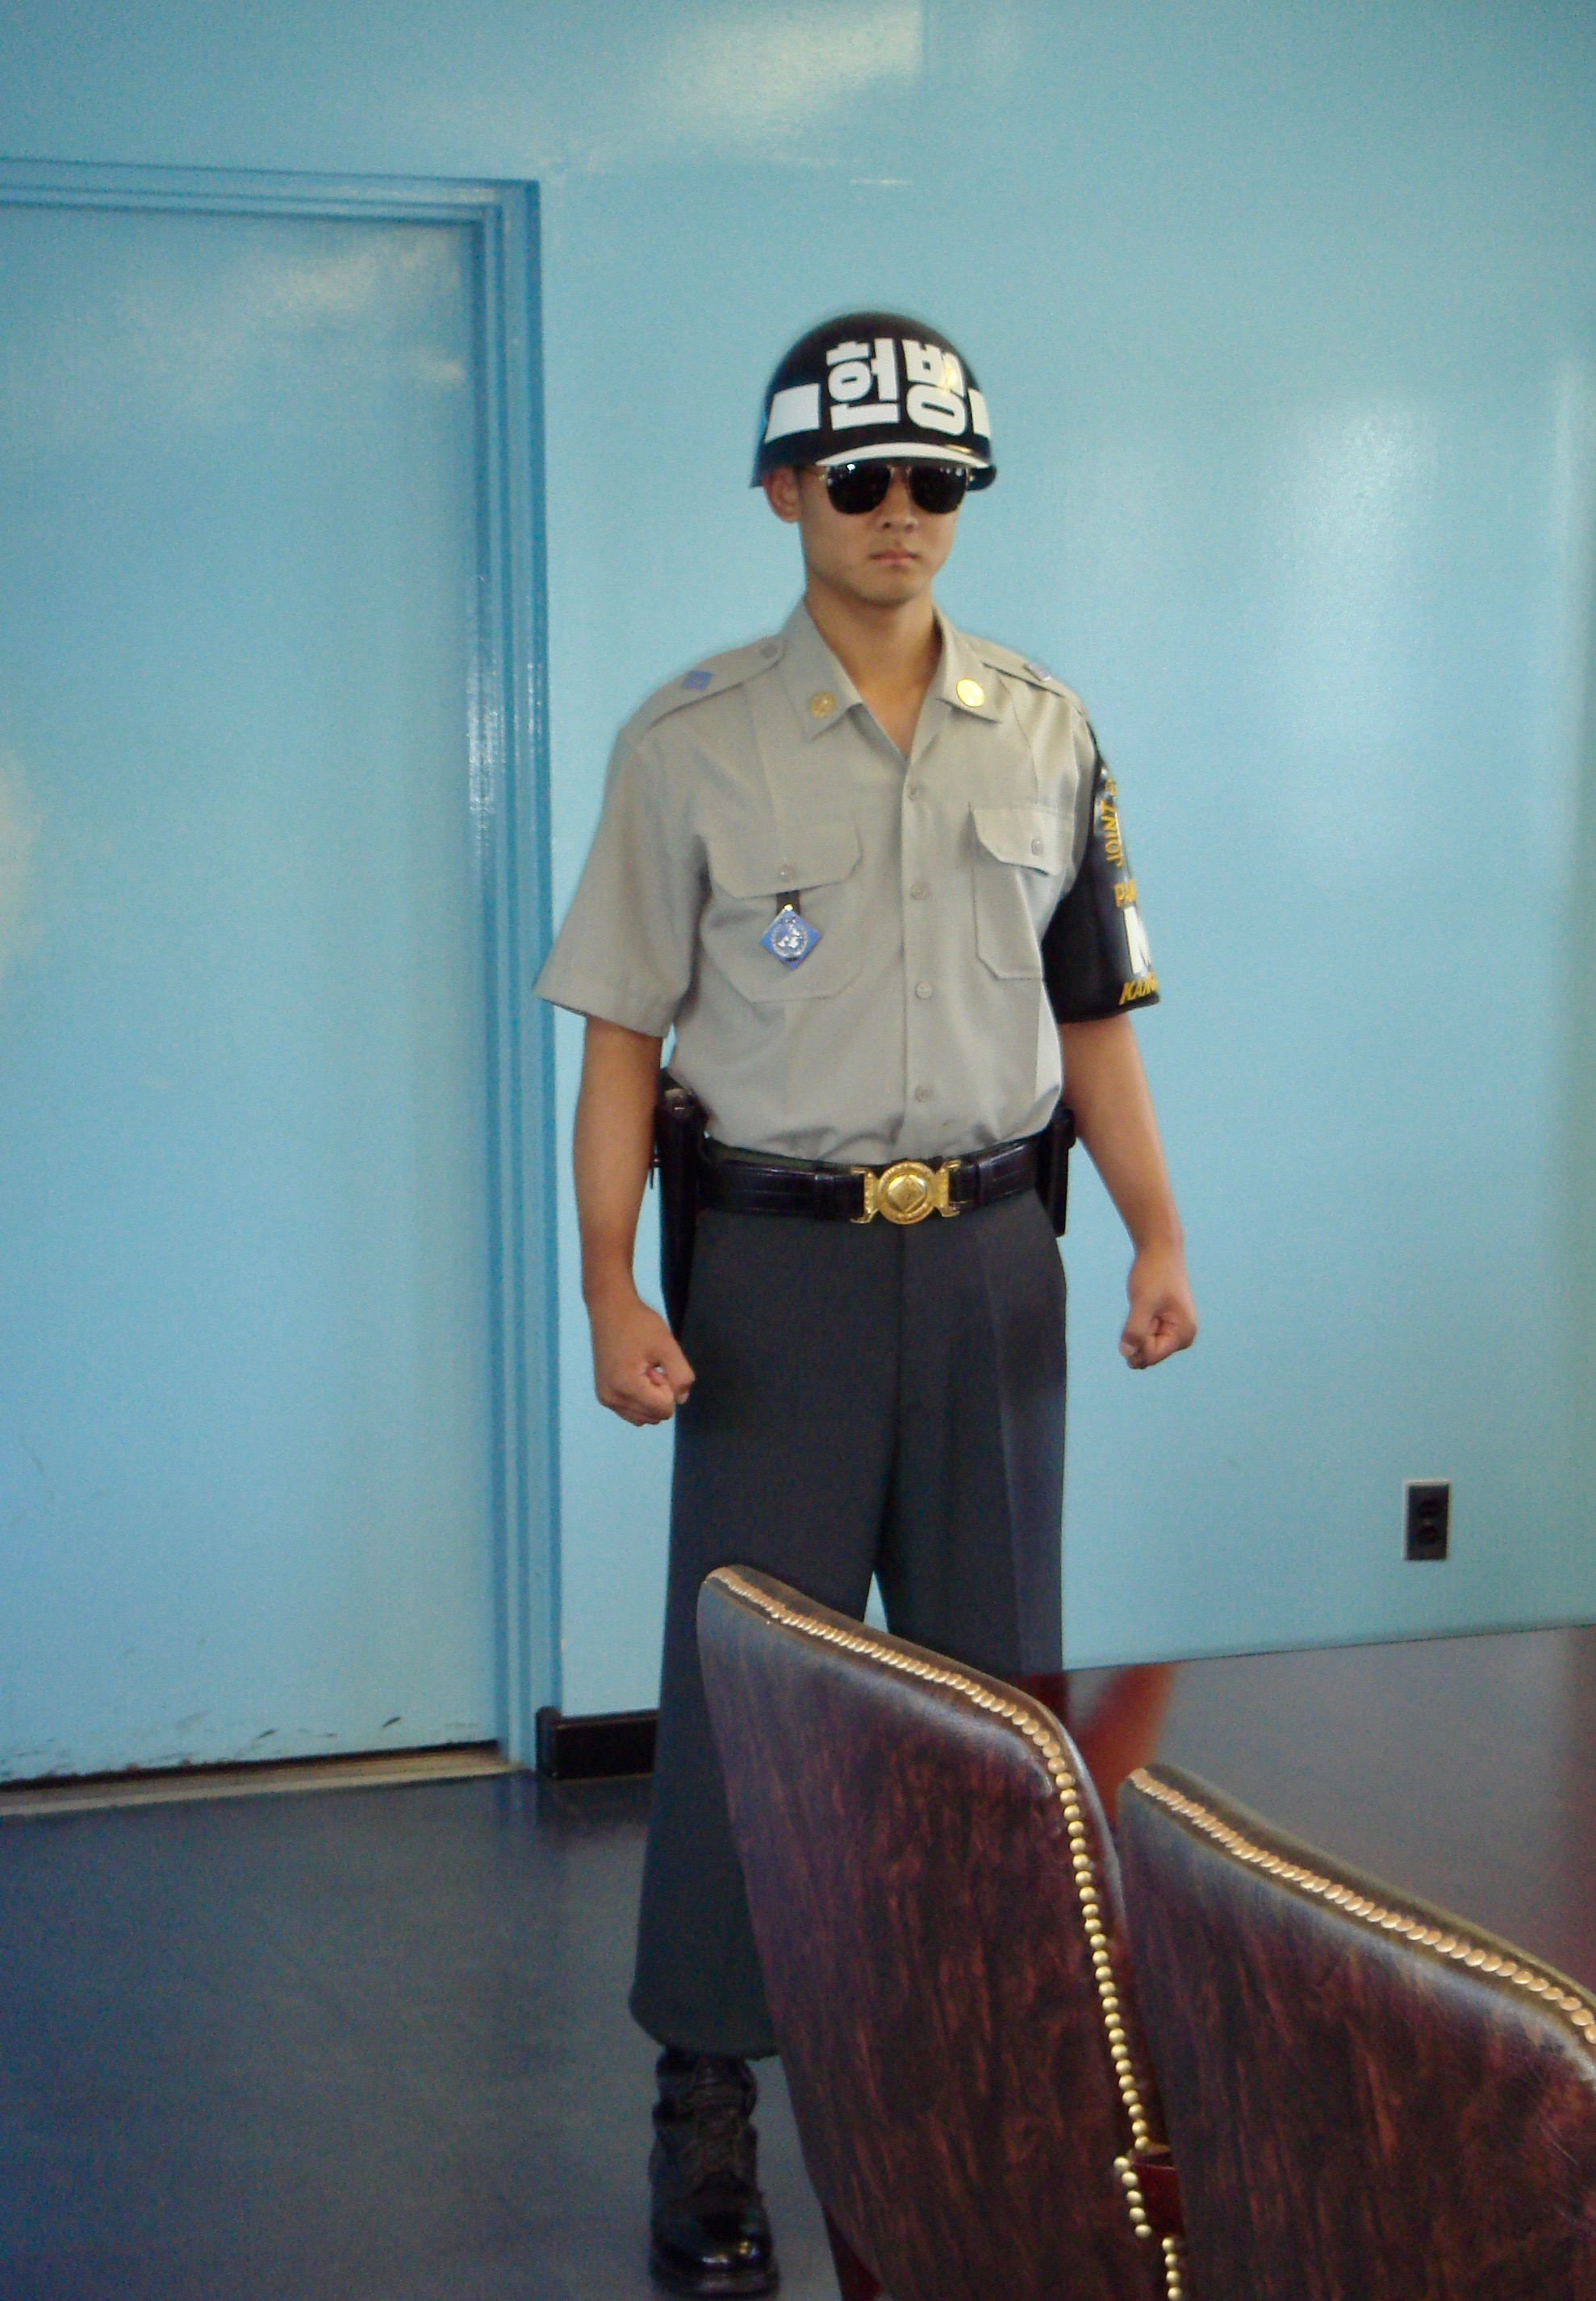 South Korean soldier standing in modified taekwondo stance inside the UN building.